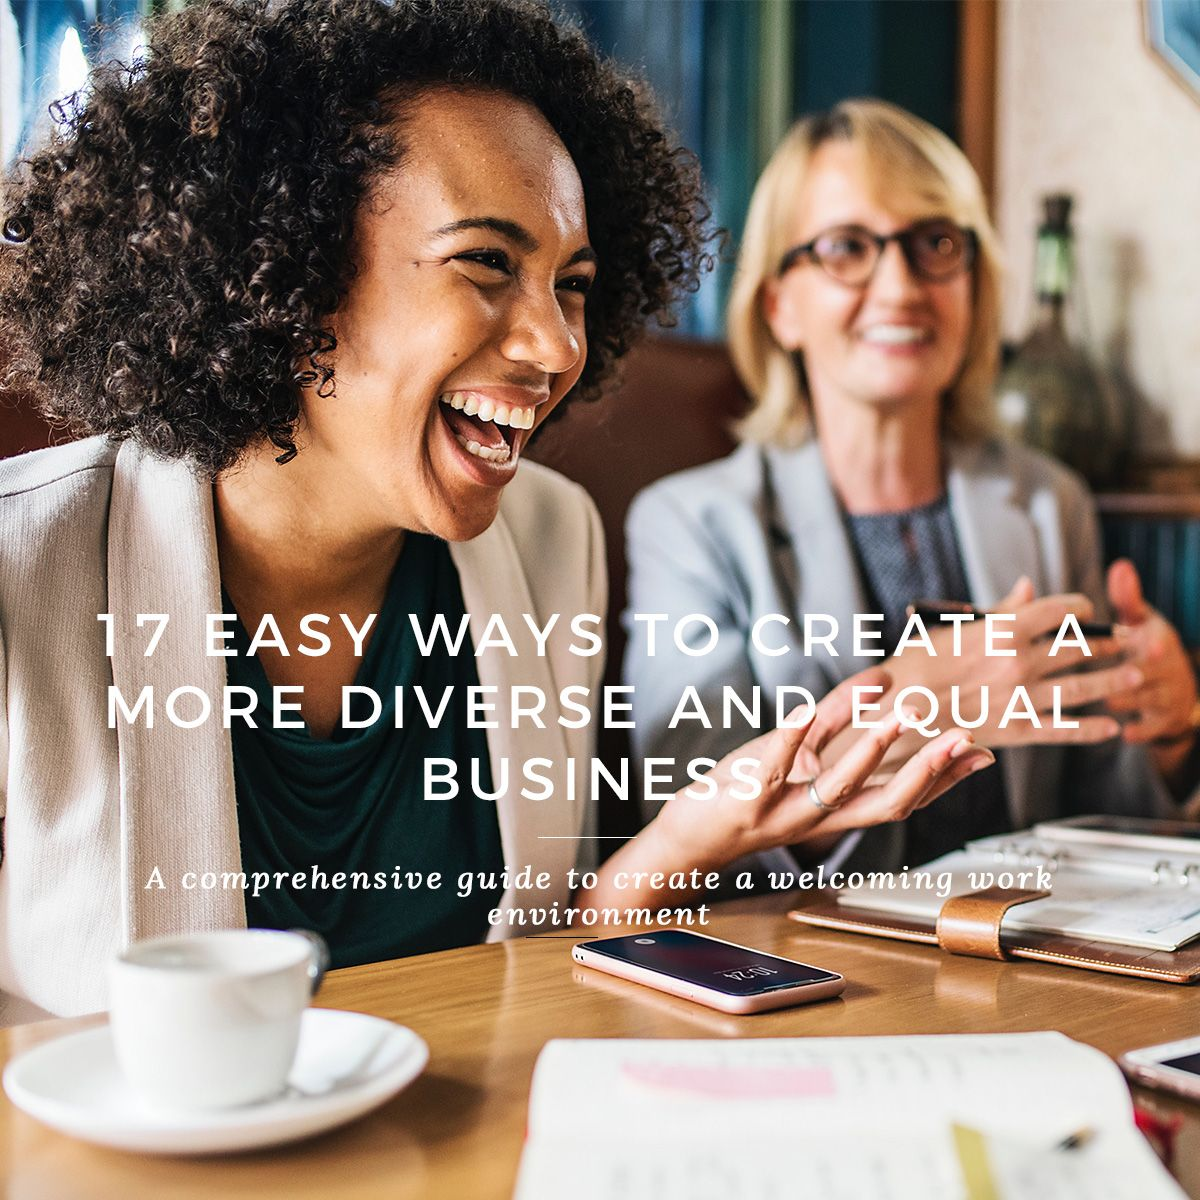 Easy More Comprehensive: 17 EASY WAYS TO CREATE A MORE DIVERSE AND EQUAL BUSINESS